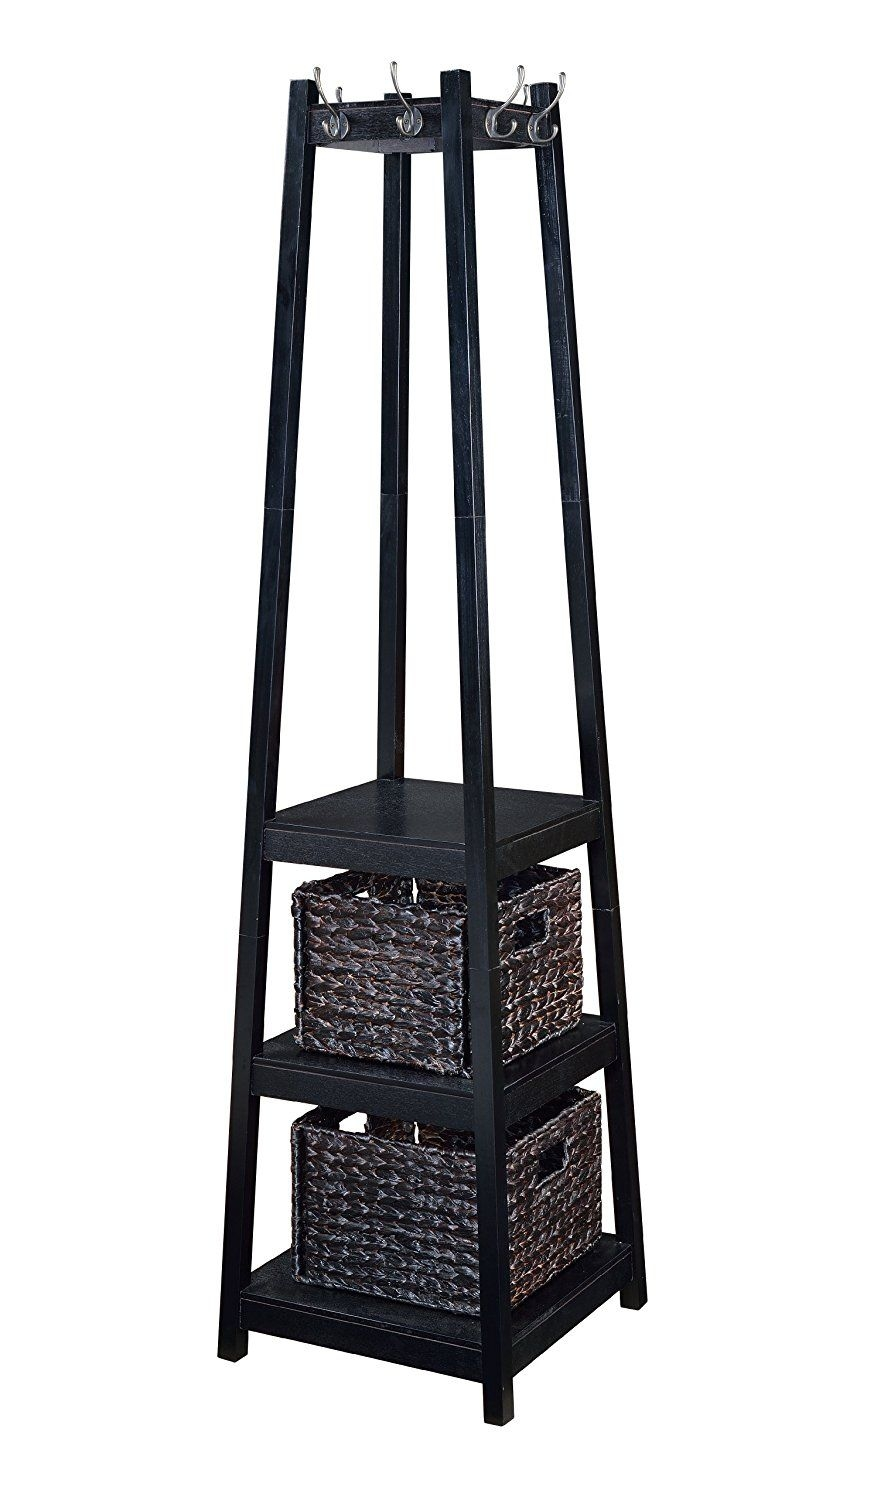 Home To Office Solutions Welcome Home Entryway Coat Rack Tower With Storage  Baskets, 72